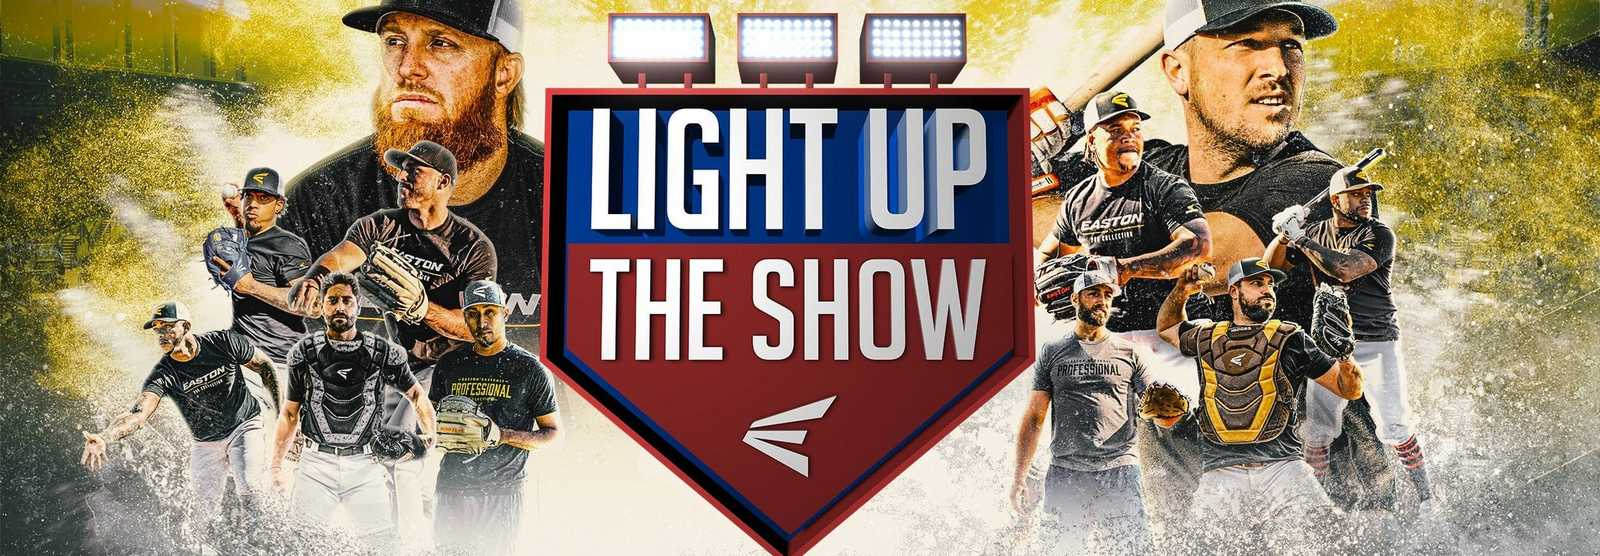 basebll-light-up-the-show